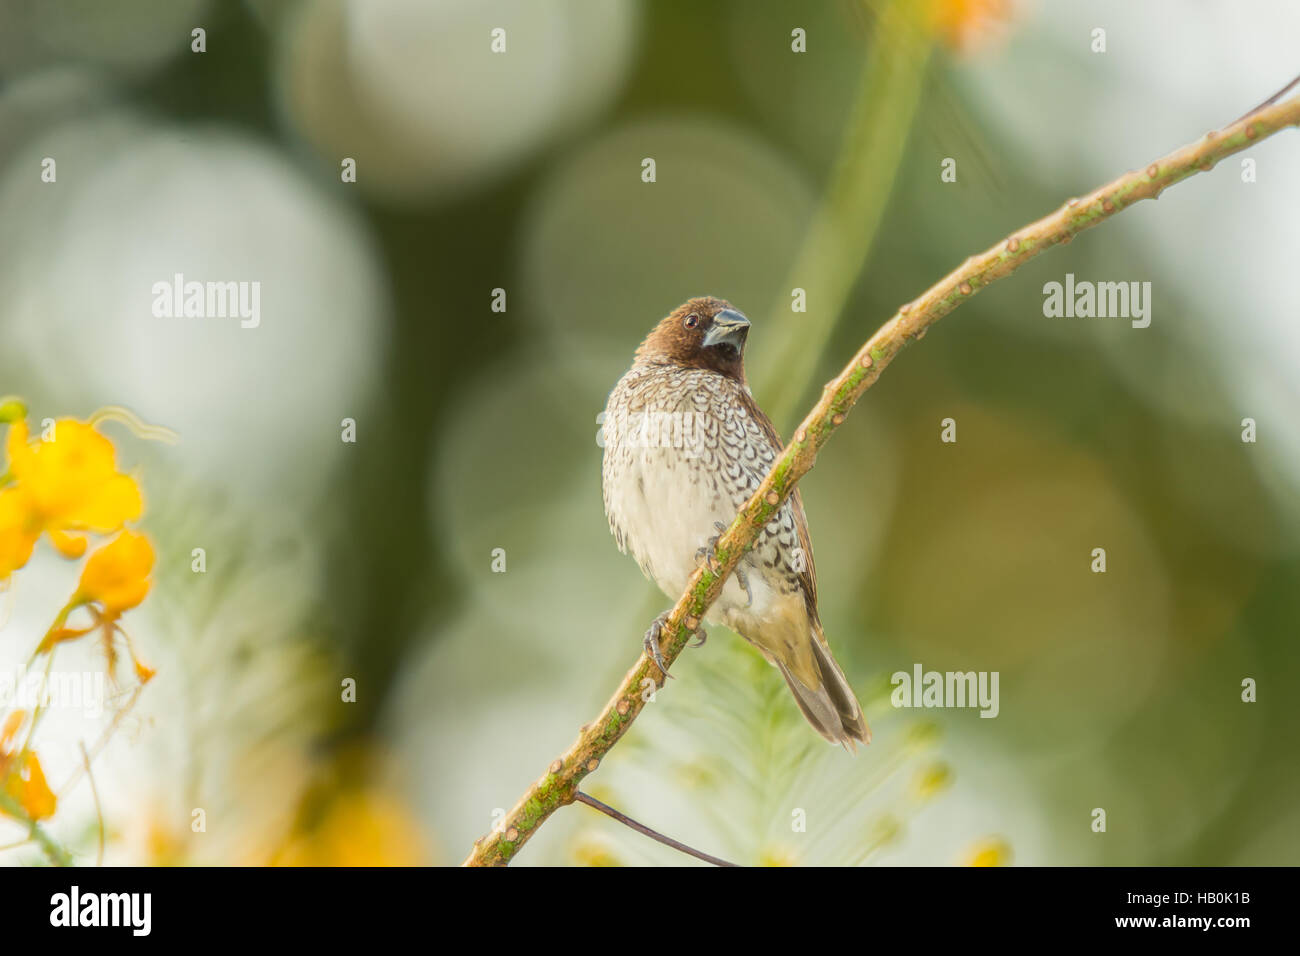 Scaly-breasted Munia Bird in the garden - Stock Image